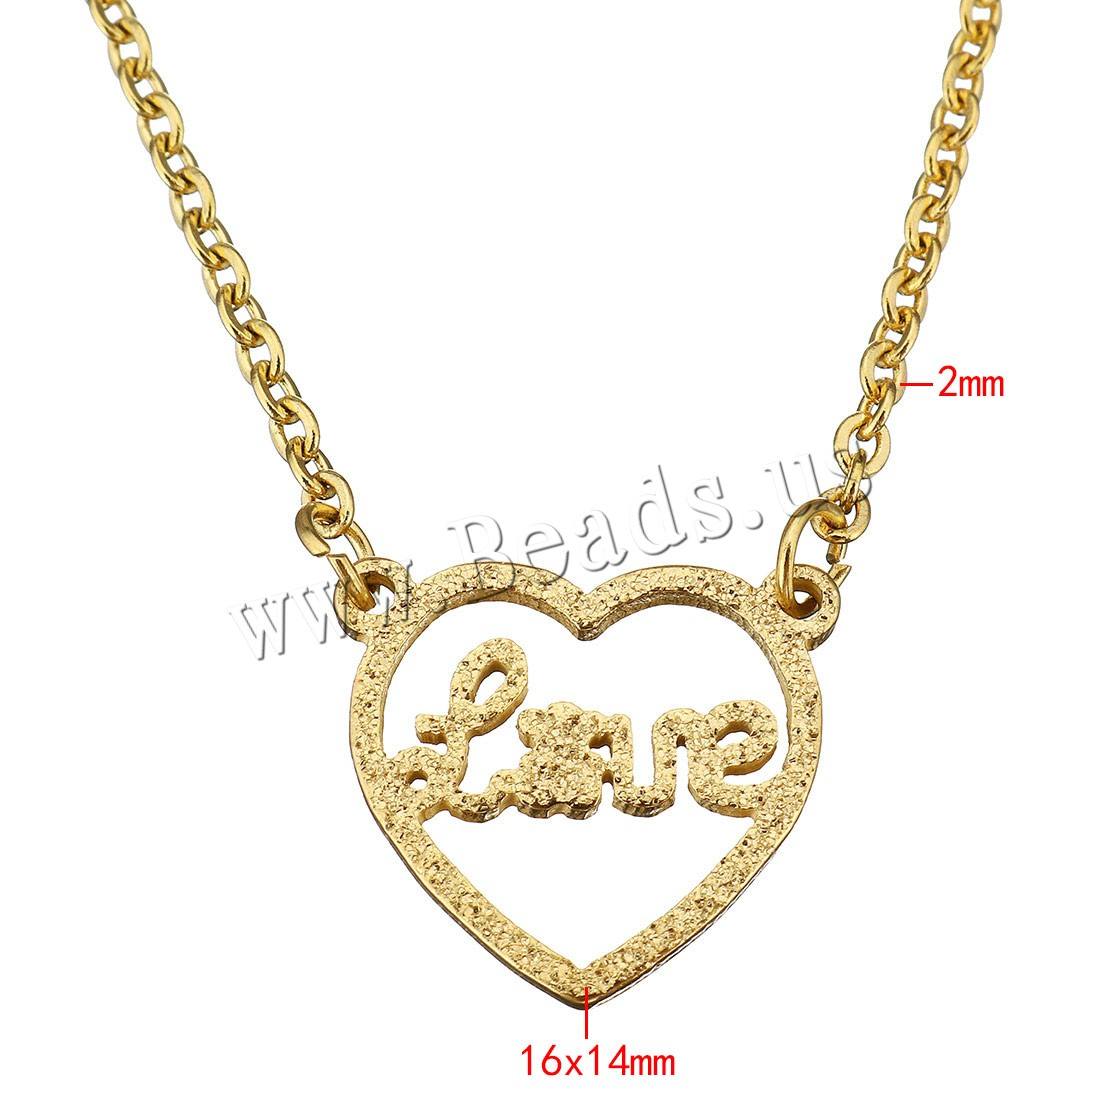 Buy Unisex Necklace Stainless Steel Heart word love gold color plated oval chain & hollow & stardust 16x14mm 2mm Sold Per Approx 18 Inch Strand